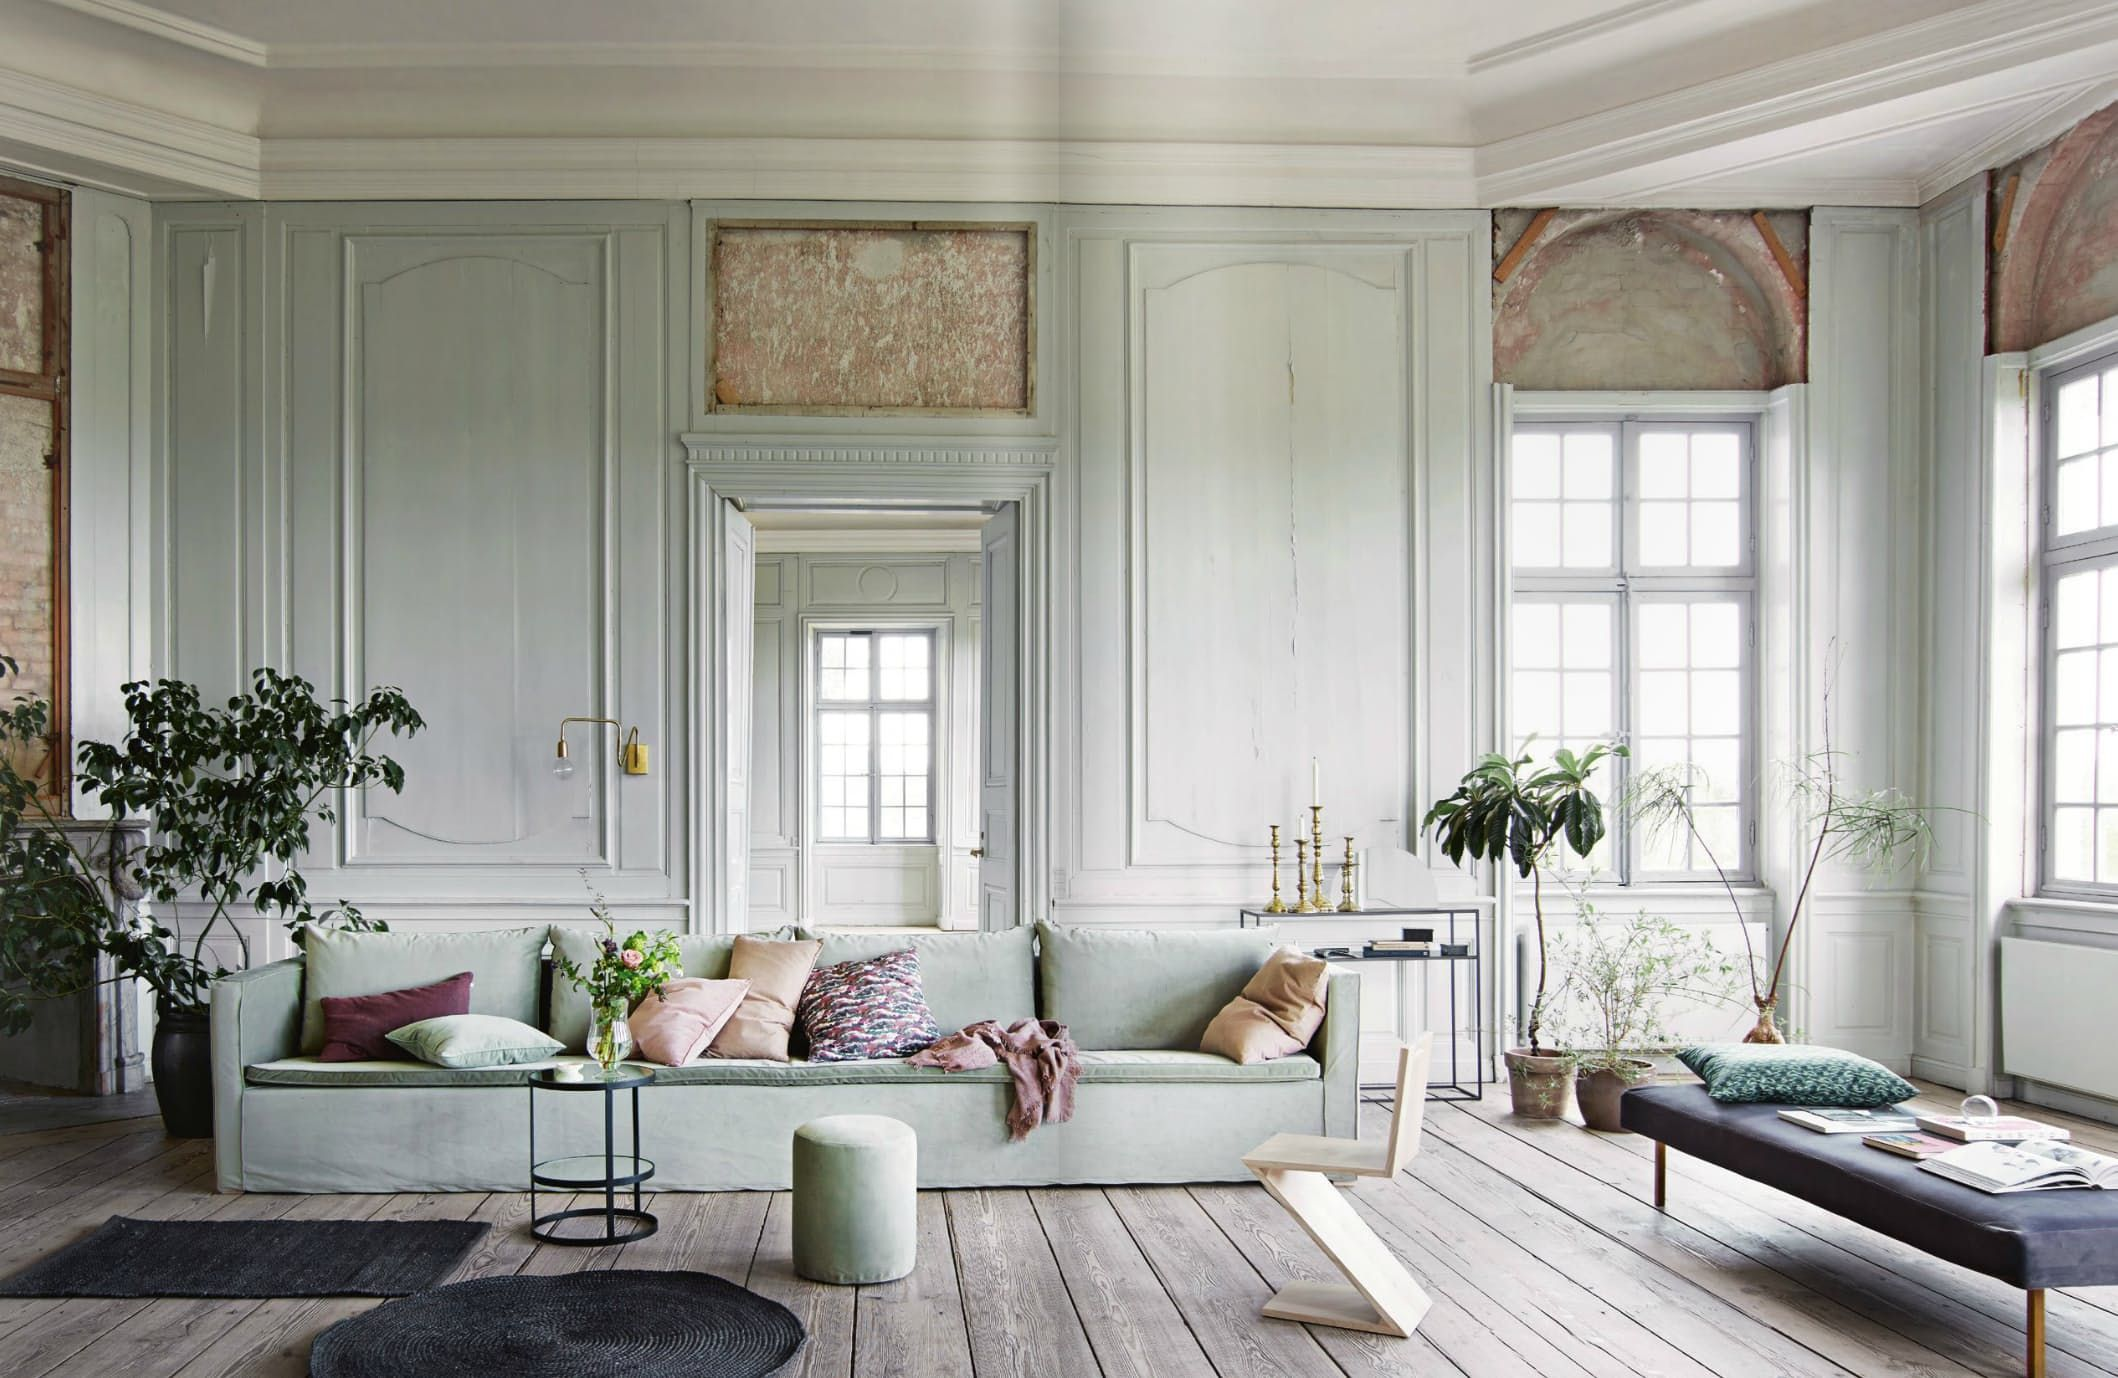 This Danish Castle Mixes Old World Style And Scandinavian Minimalism And It Is Fantastic Home Decor Interior Design Interior